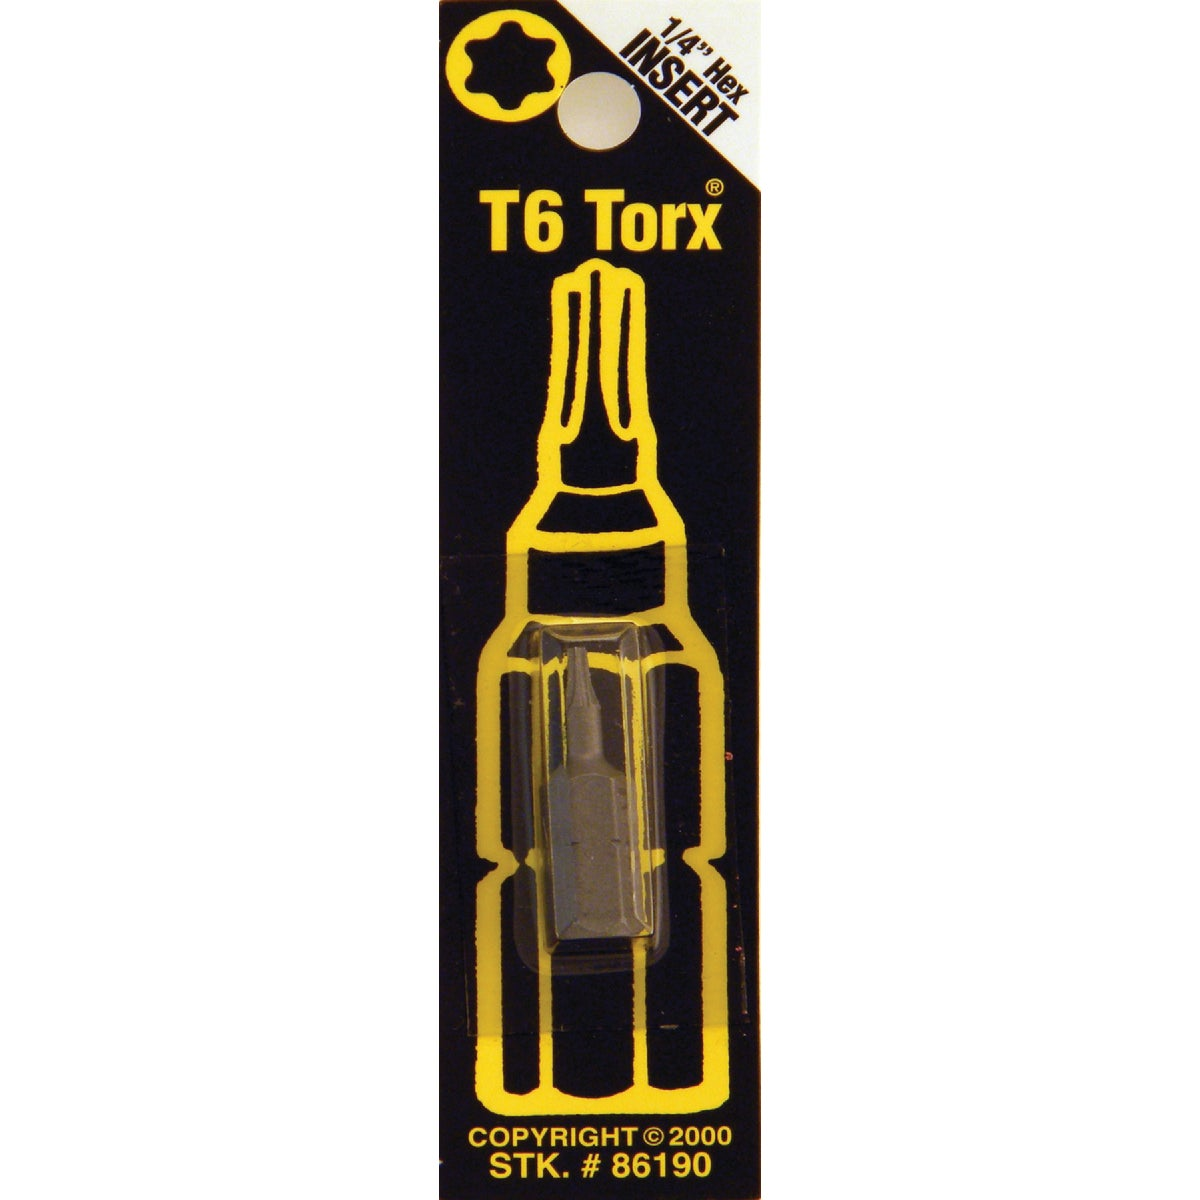 T6 TORX SECURITY BIT - 86190 by Bwt Inc